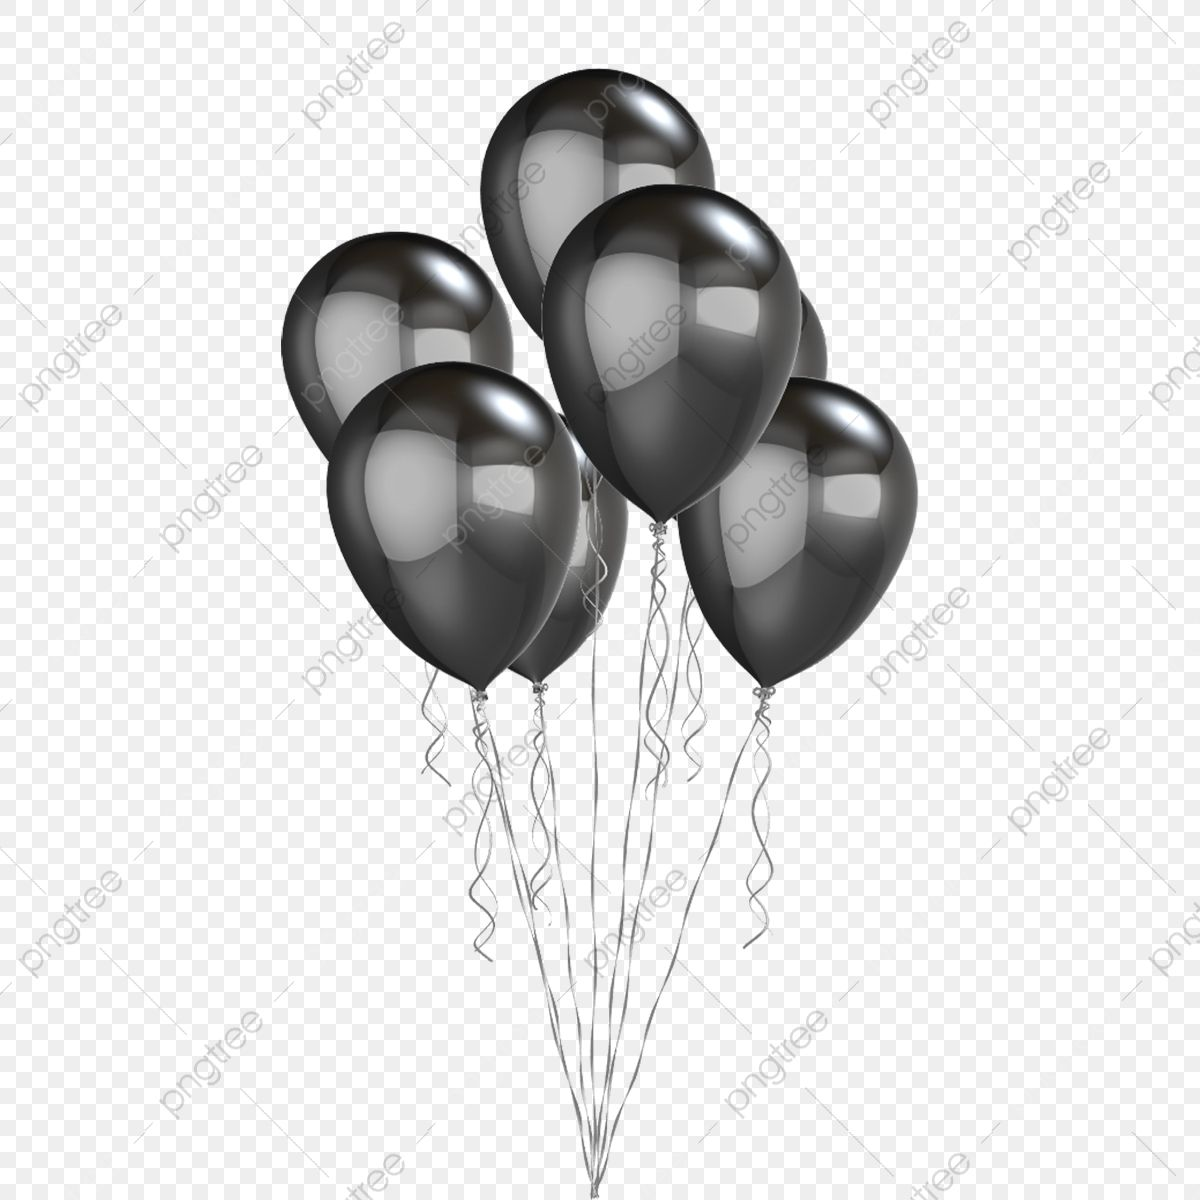 Black And Silver Balloons Png Silver Balloon Black And Gold Balloons Black Balloons